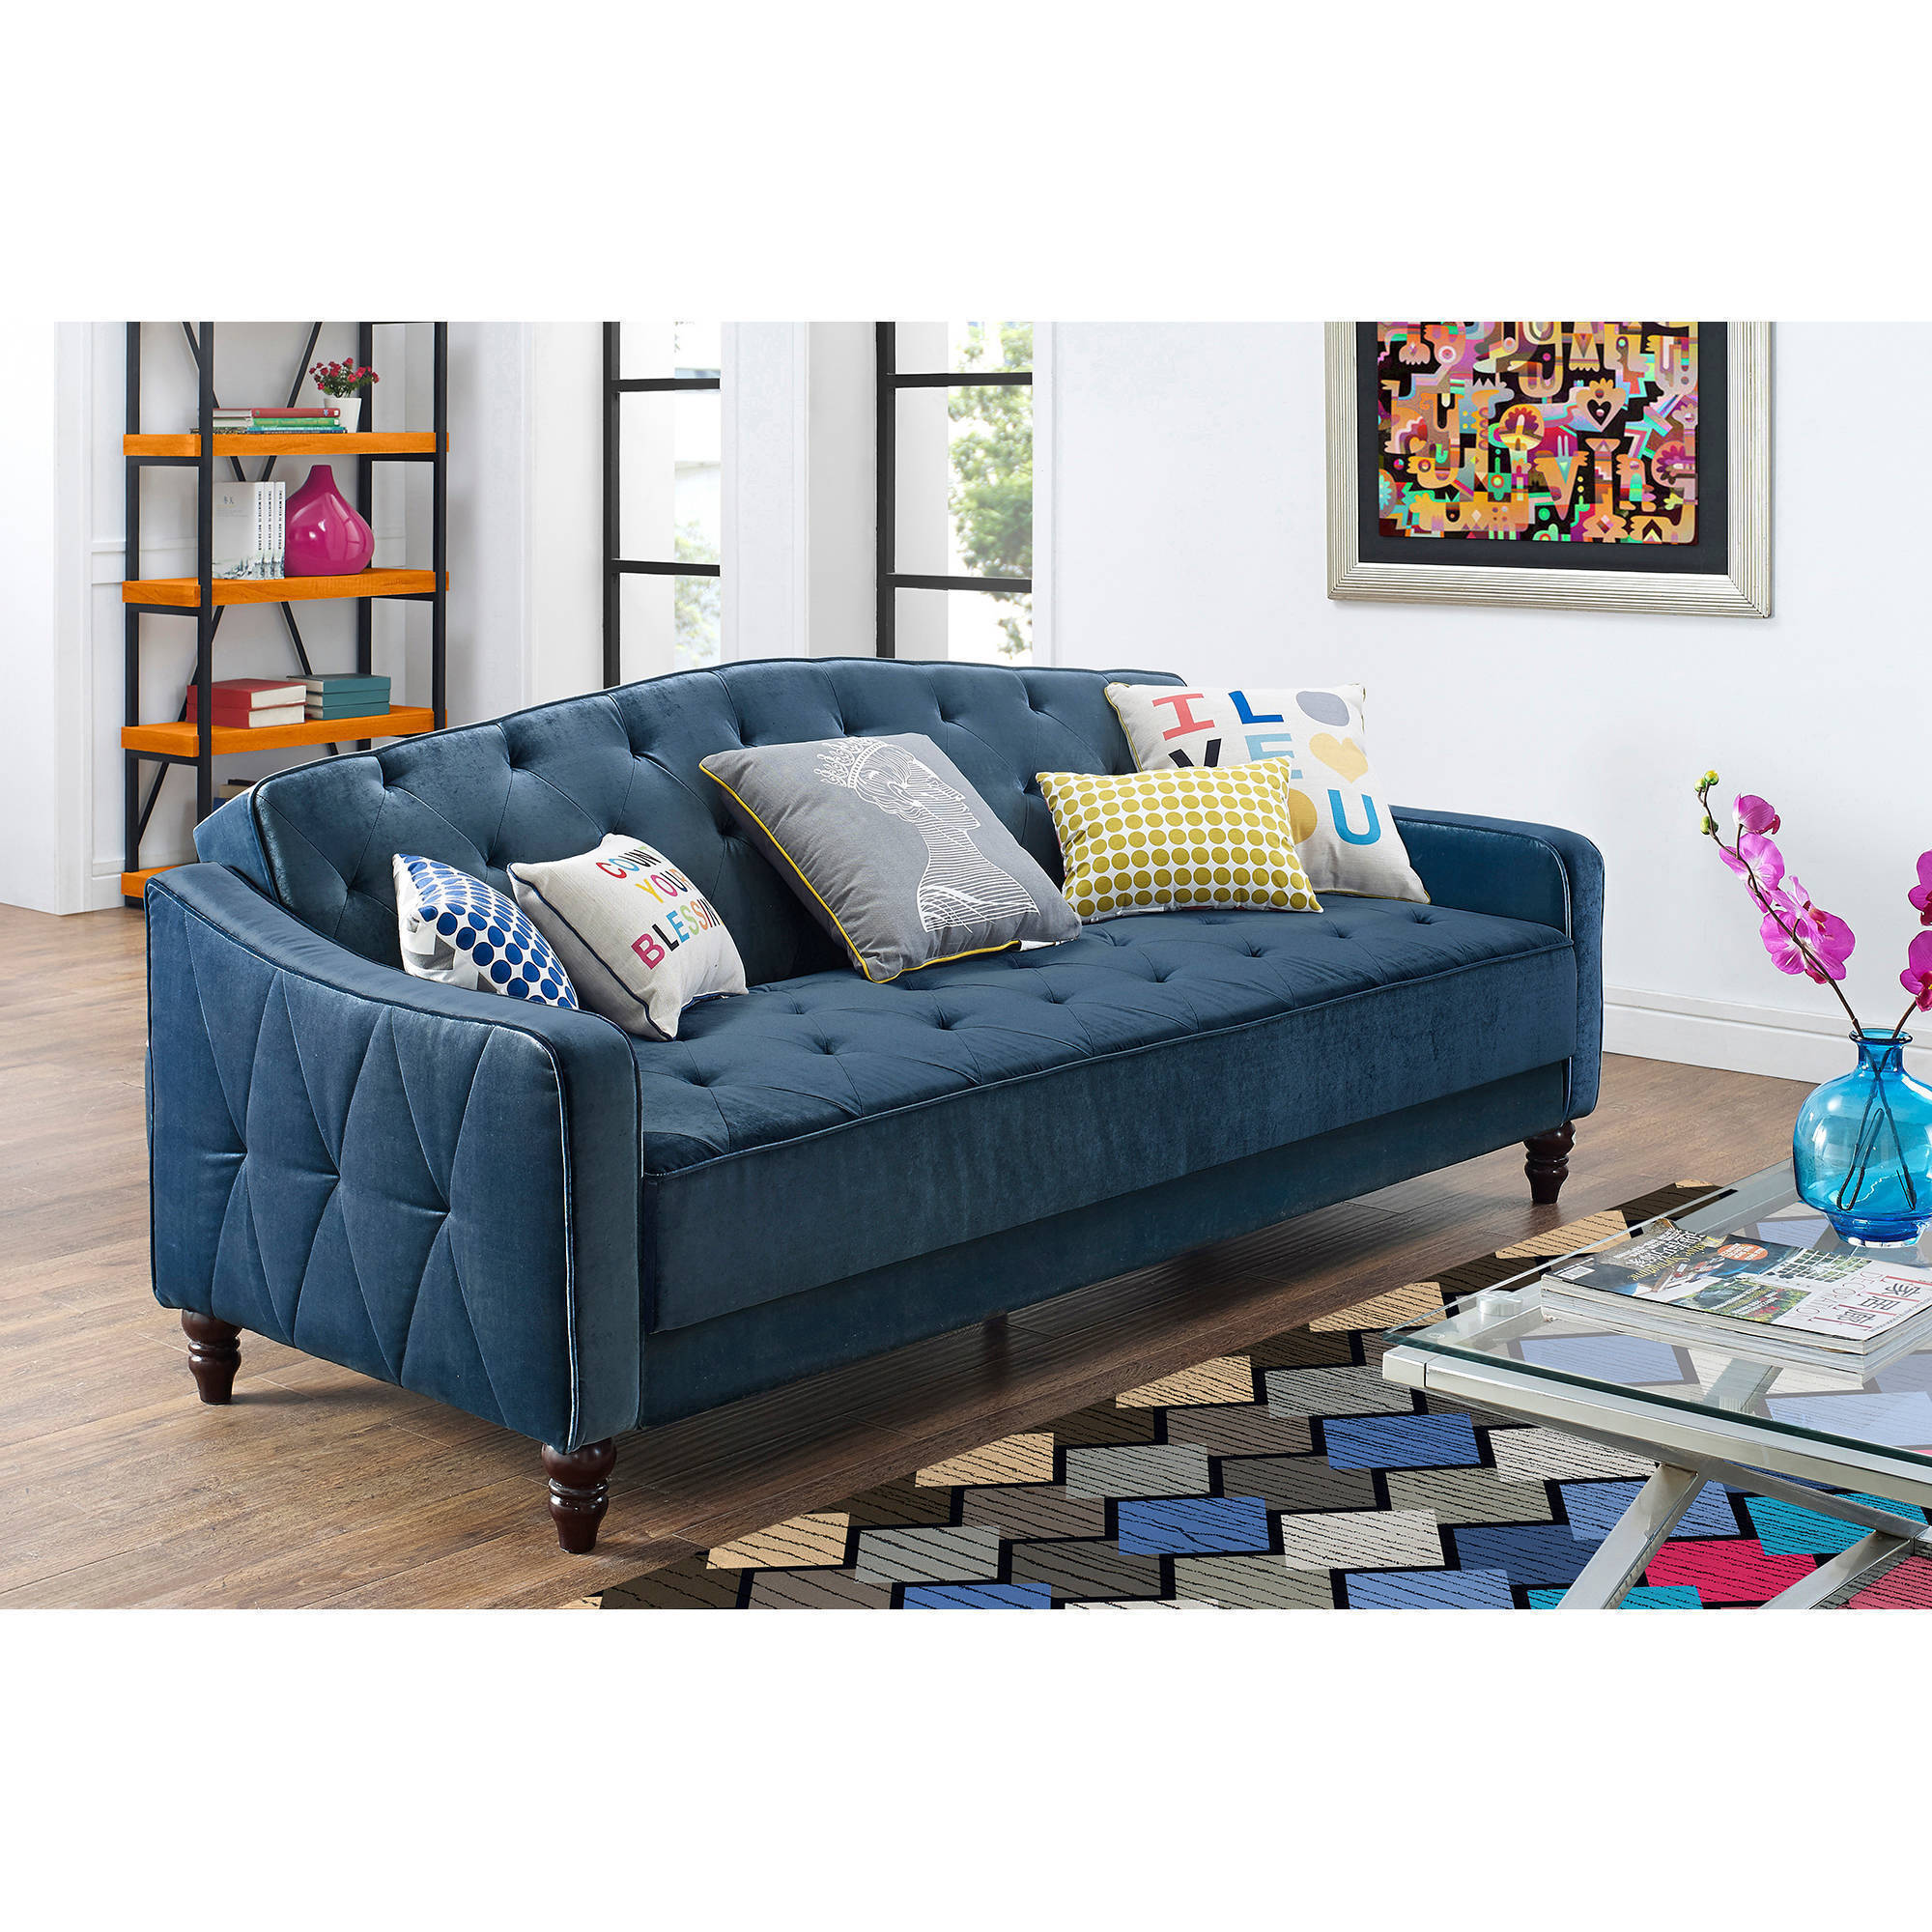 futon sofa beds over $250 QTRWQWD